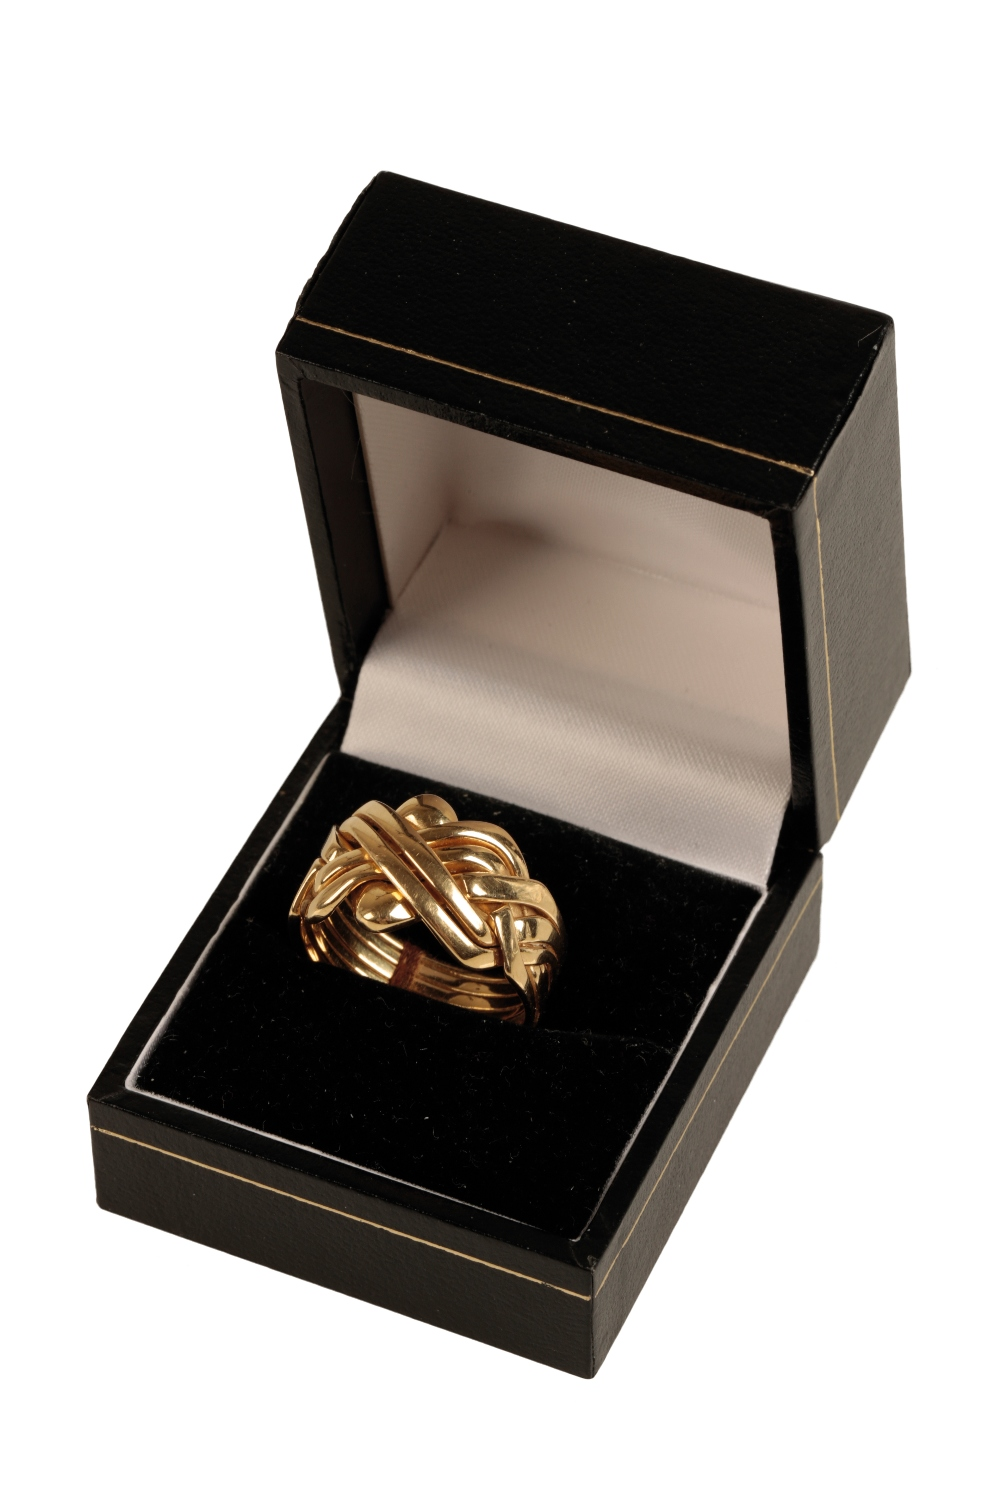 Lot 234 - A SOLID GOLD PUZZLE RING